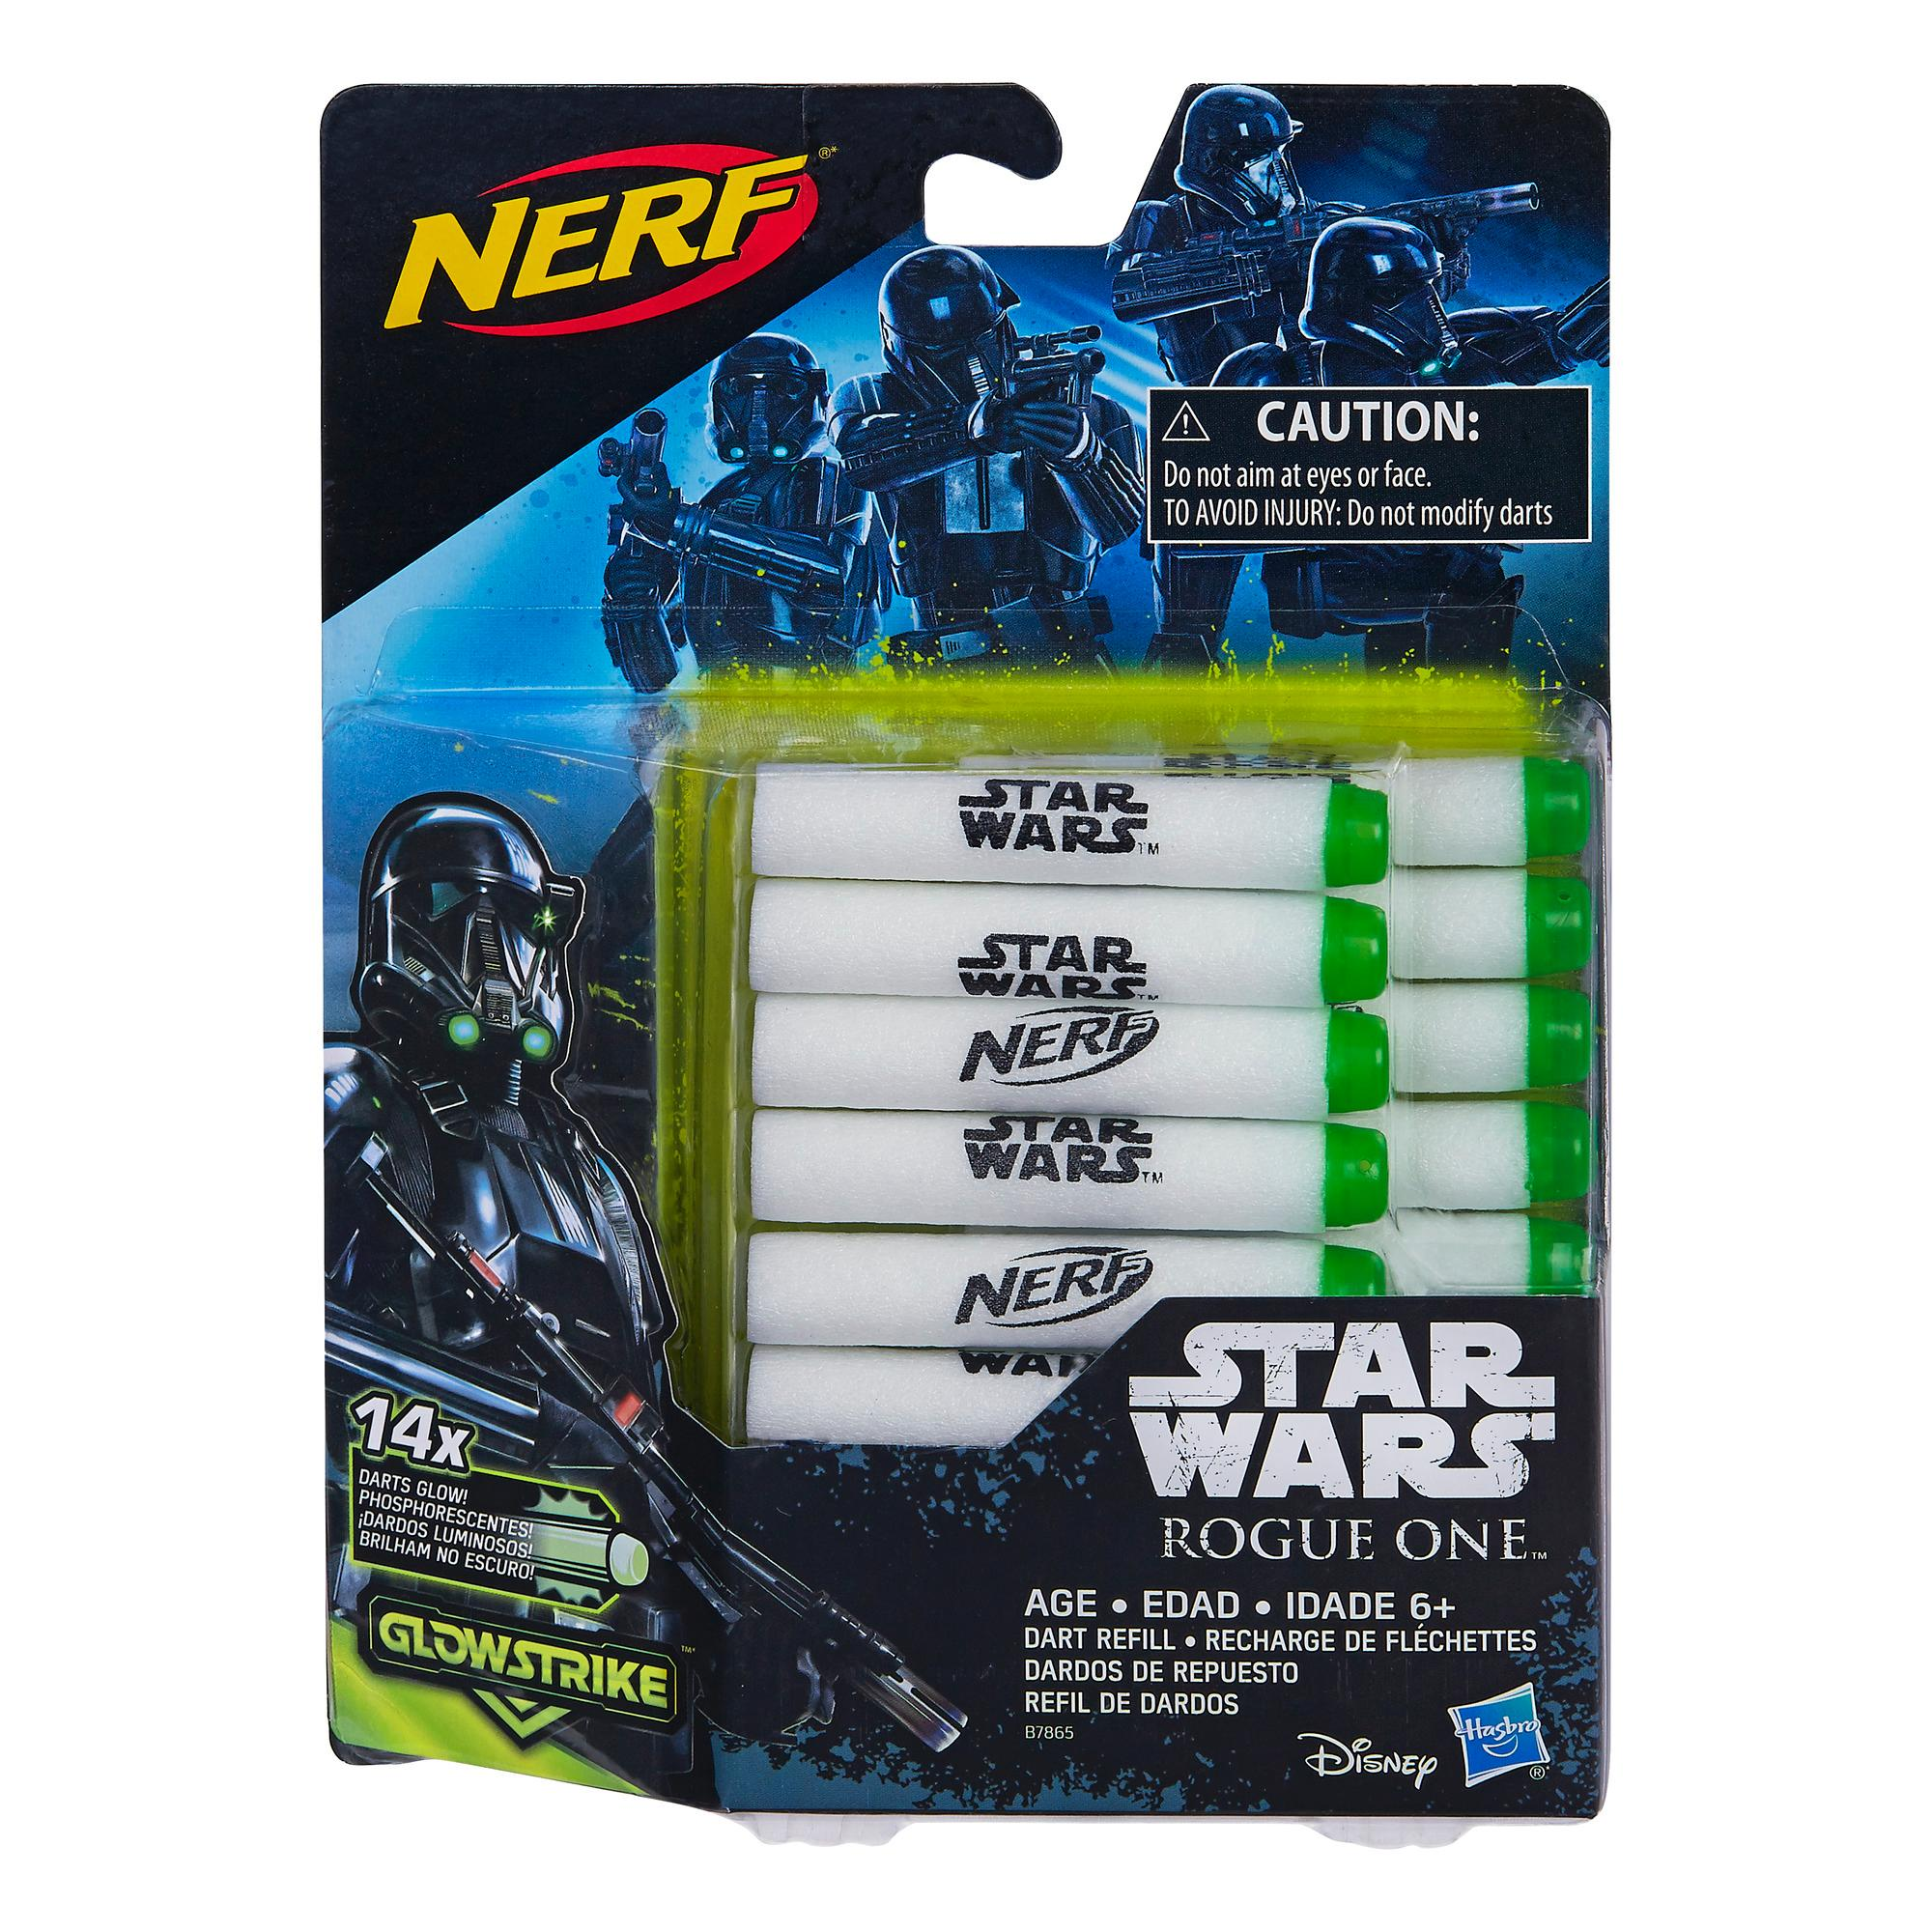 Star Wars Rogue One Nerf GlowStrike Dart Refill